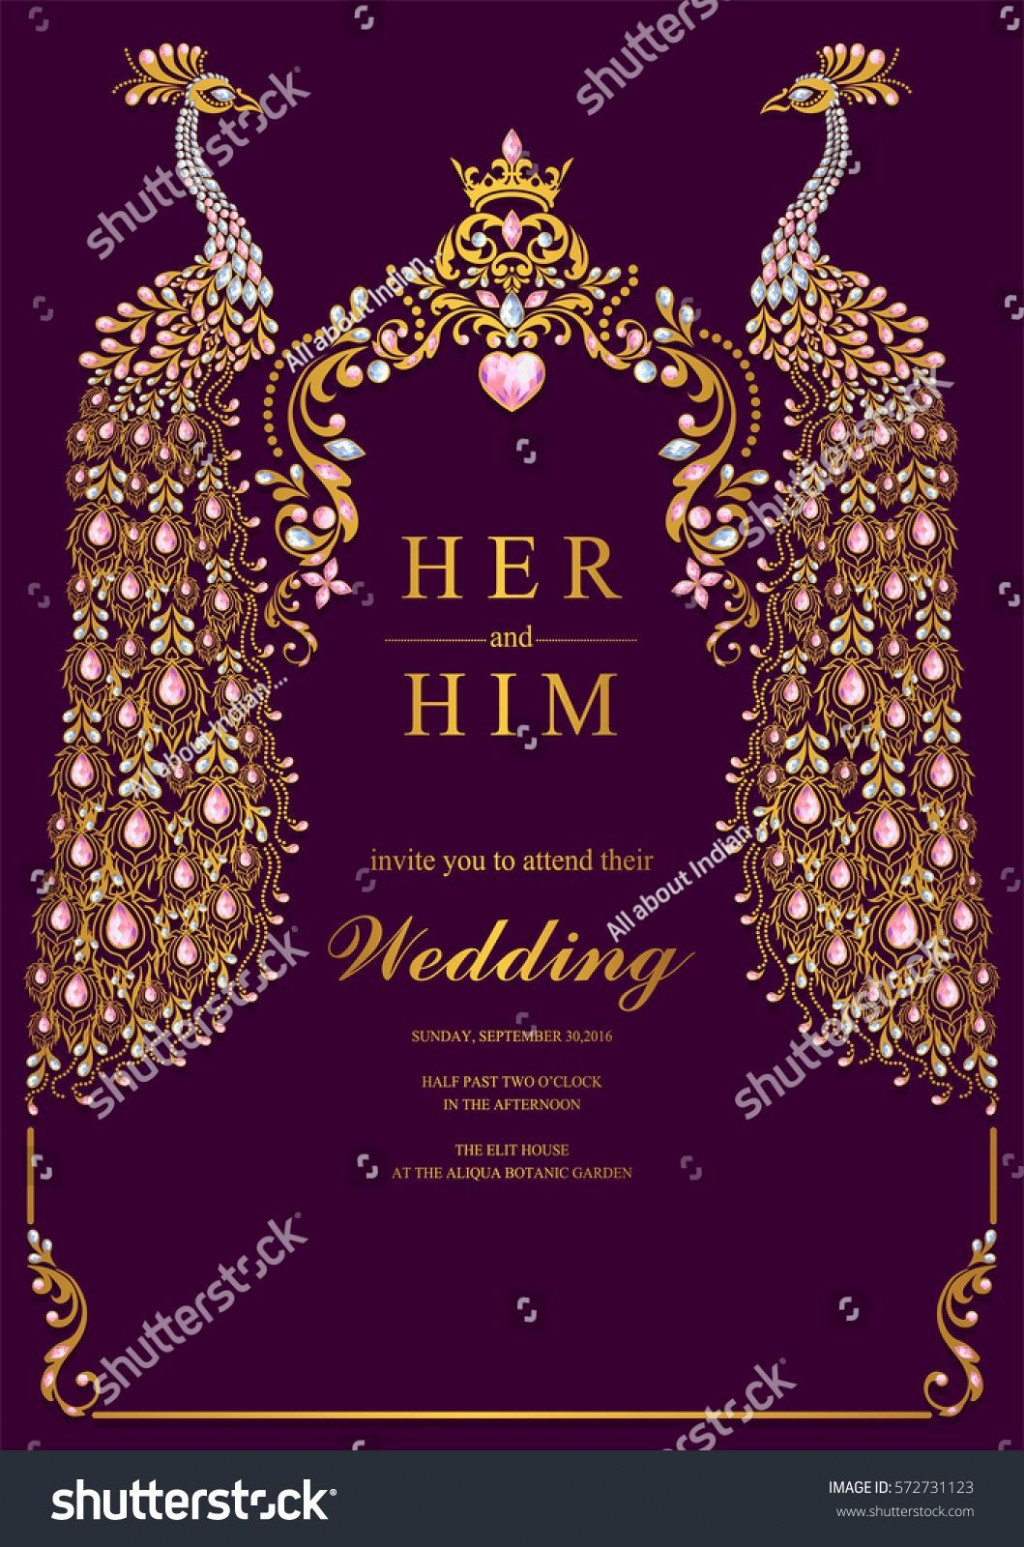 000 Beautiful Indian Wedding Invitation Template Sample  Psd Free Download Marriage Online For FriendLarge